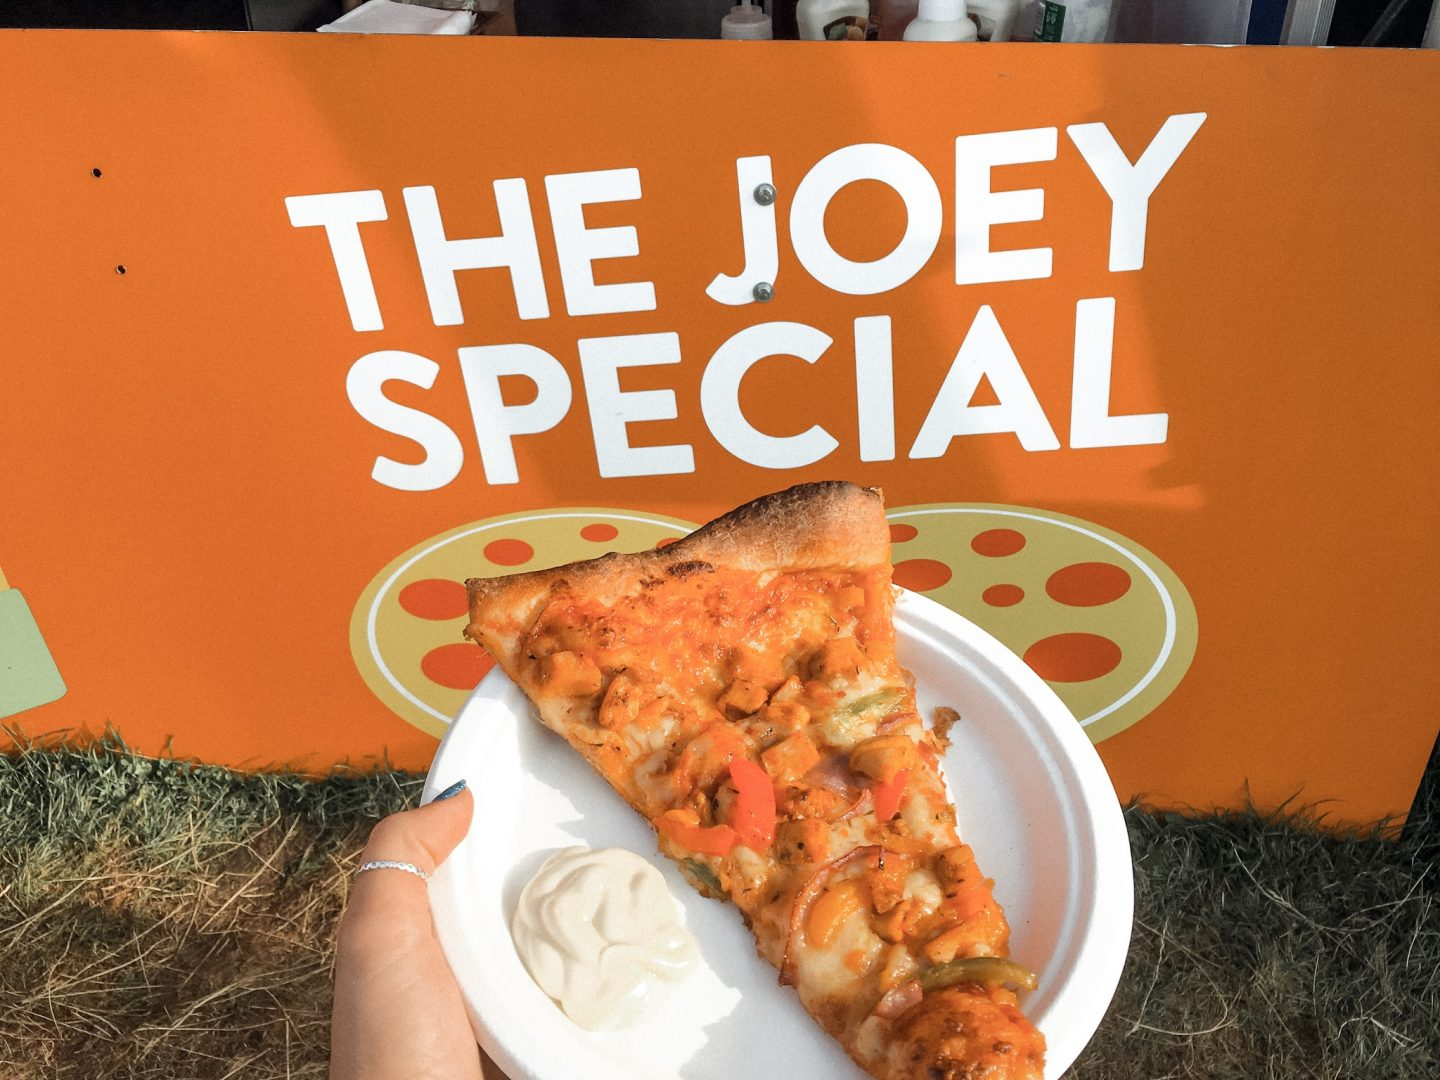 Friendsfest Joey Special Pizza